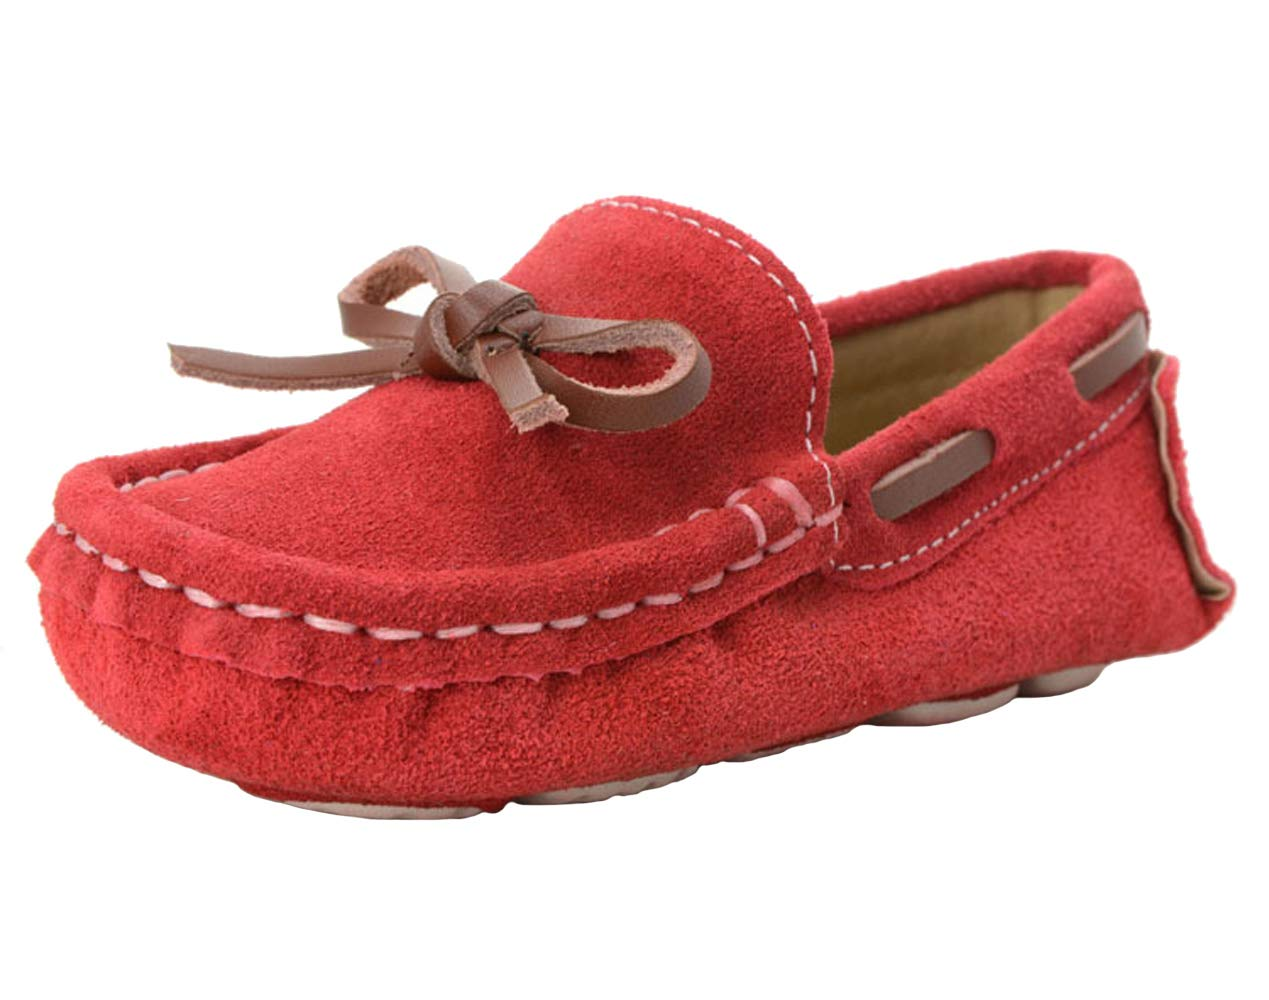 WUIWUIYU Boys' Girls' Suede Slip-On Loafers Flats School Casual Shoes Red Size 7 M